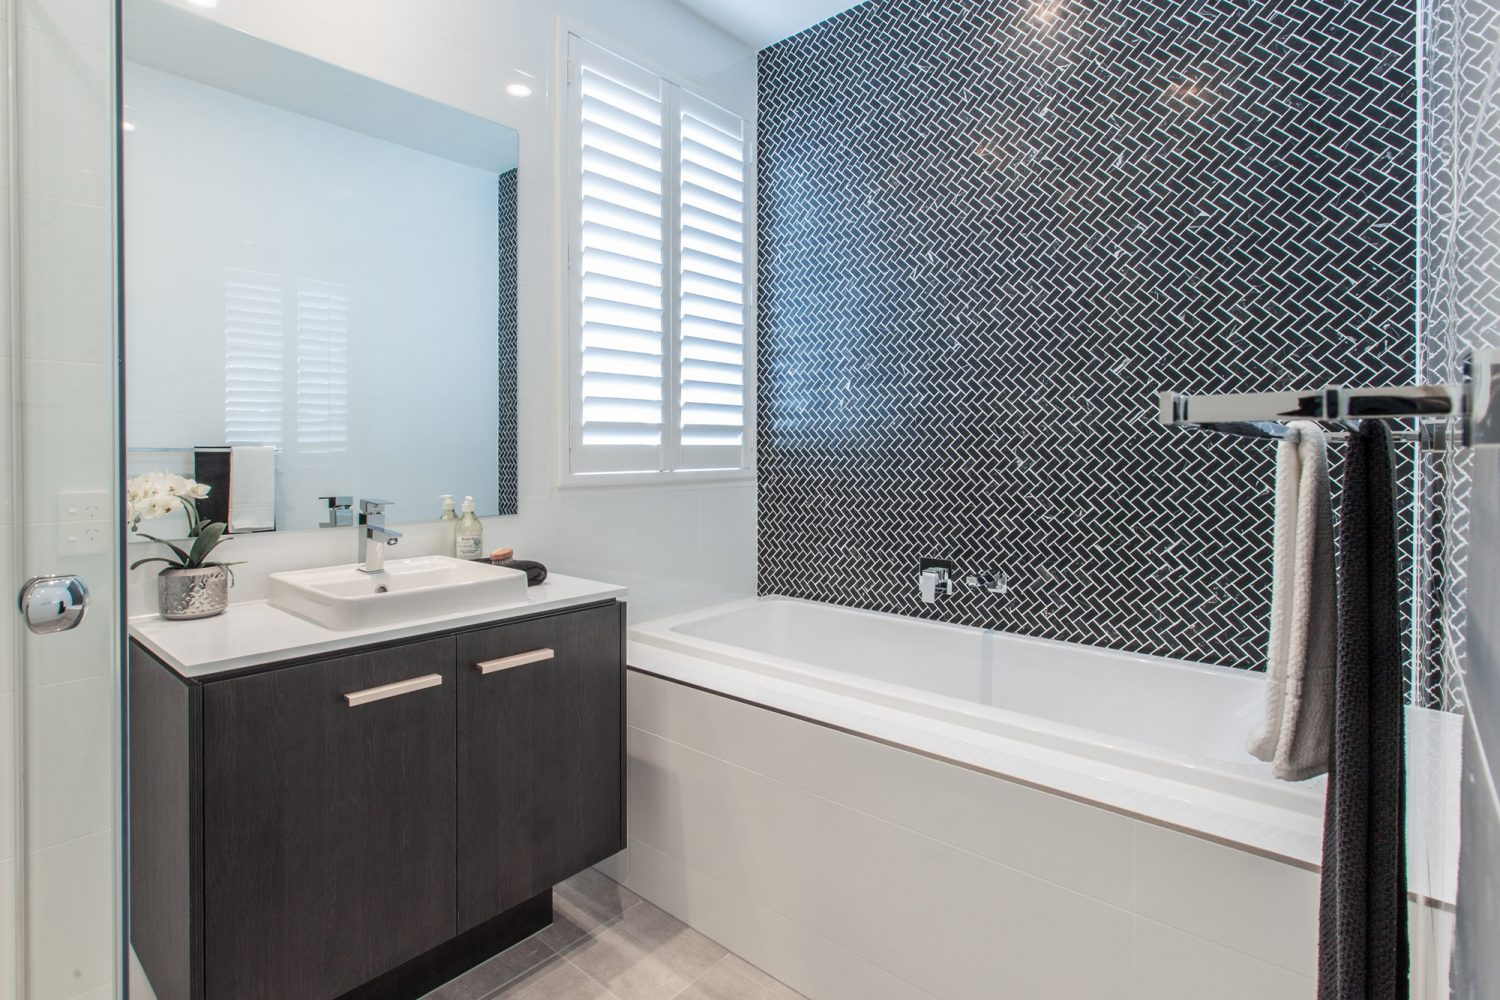 Tile Wall Behind Freestanding Tub